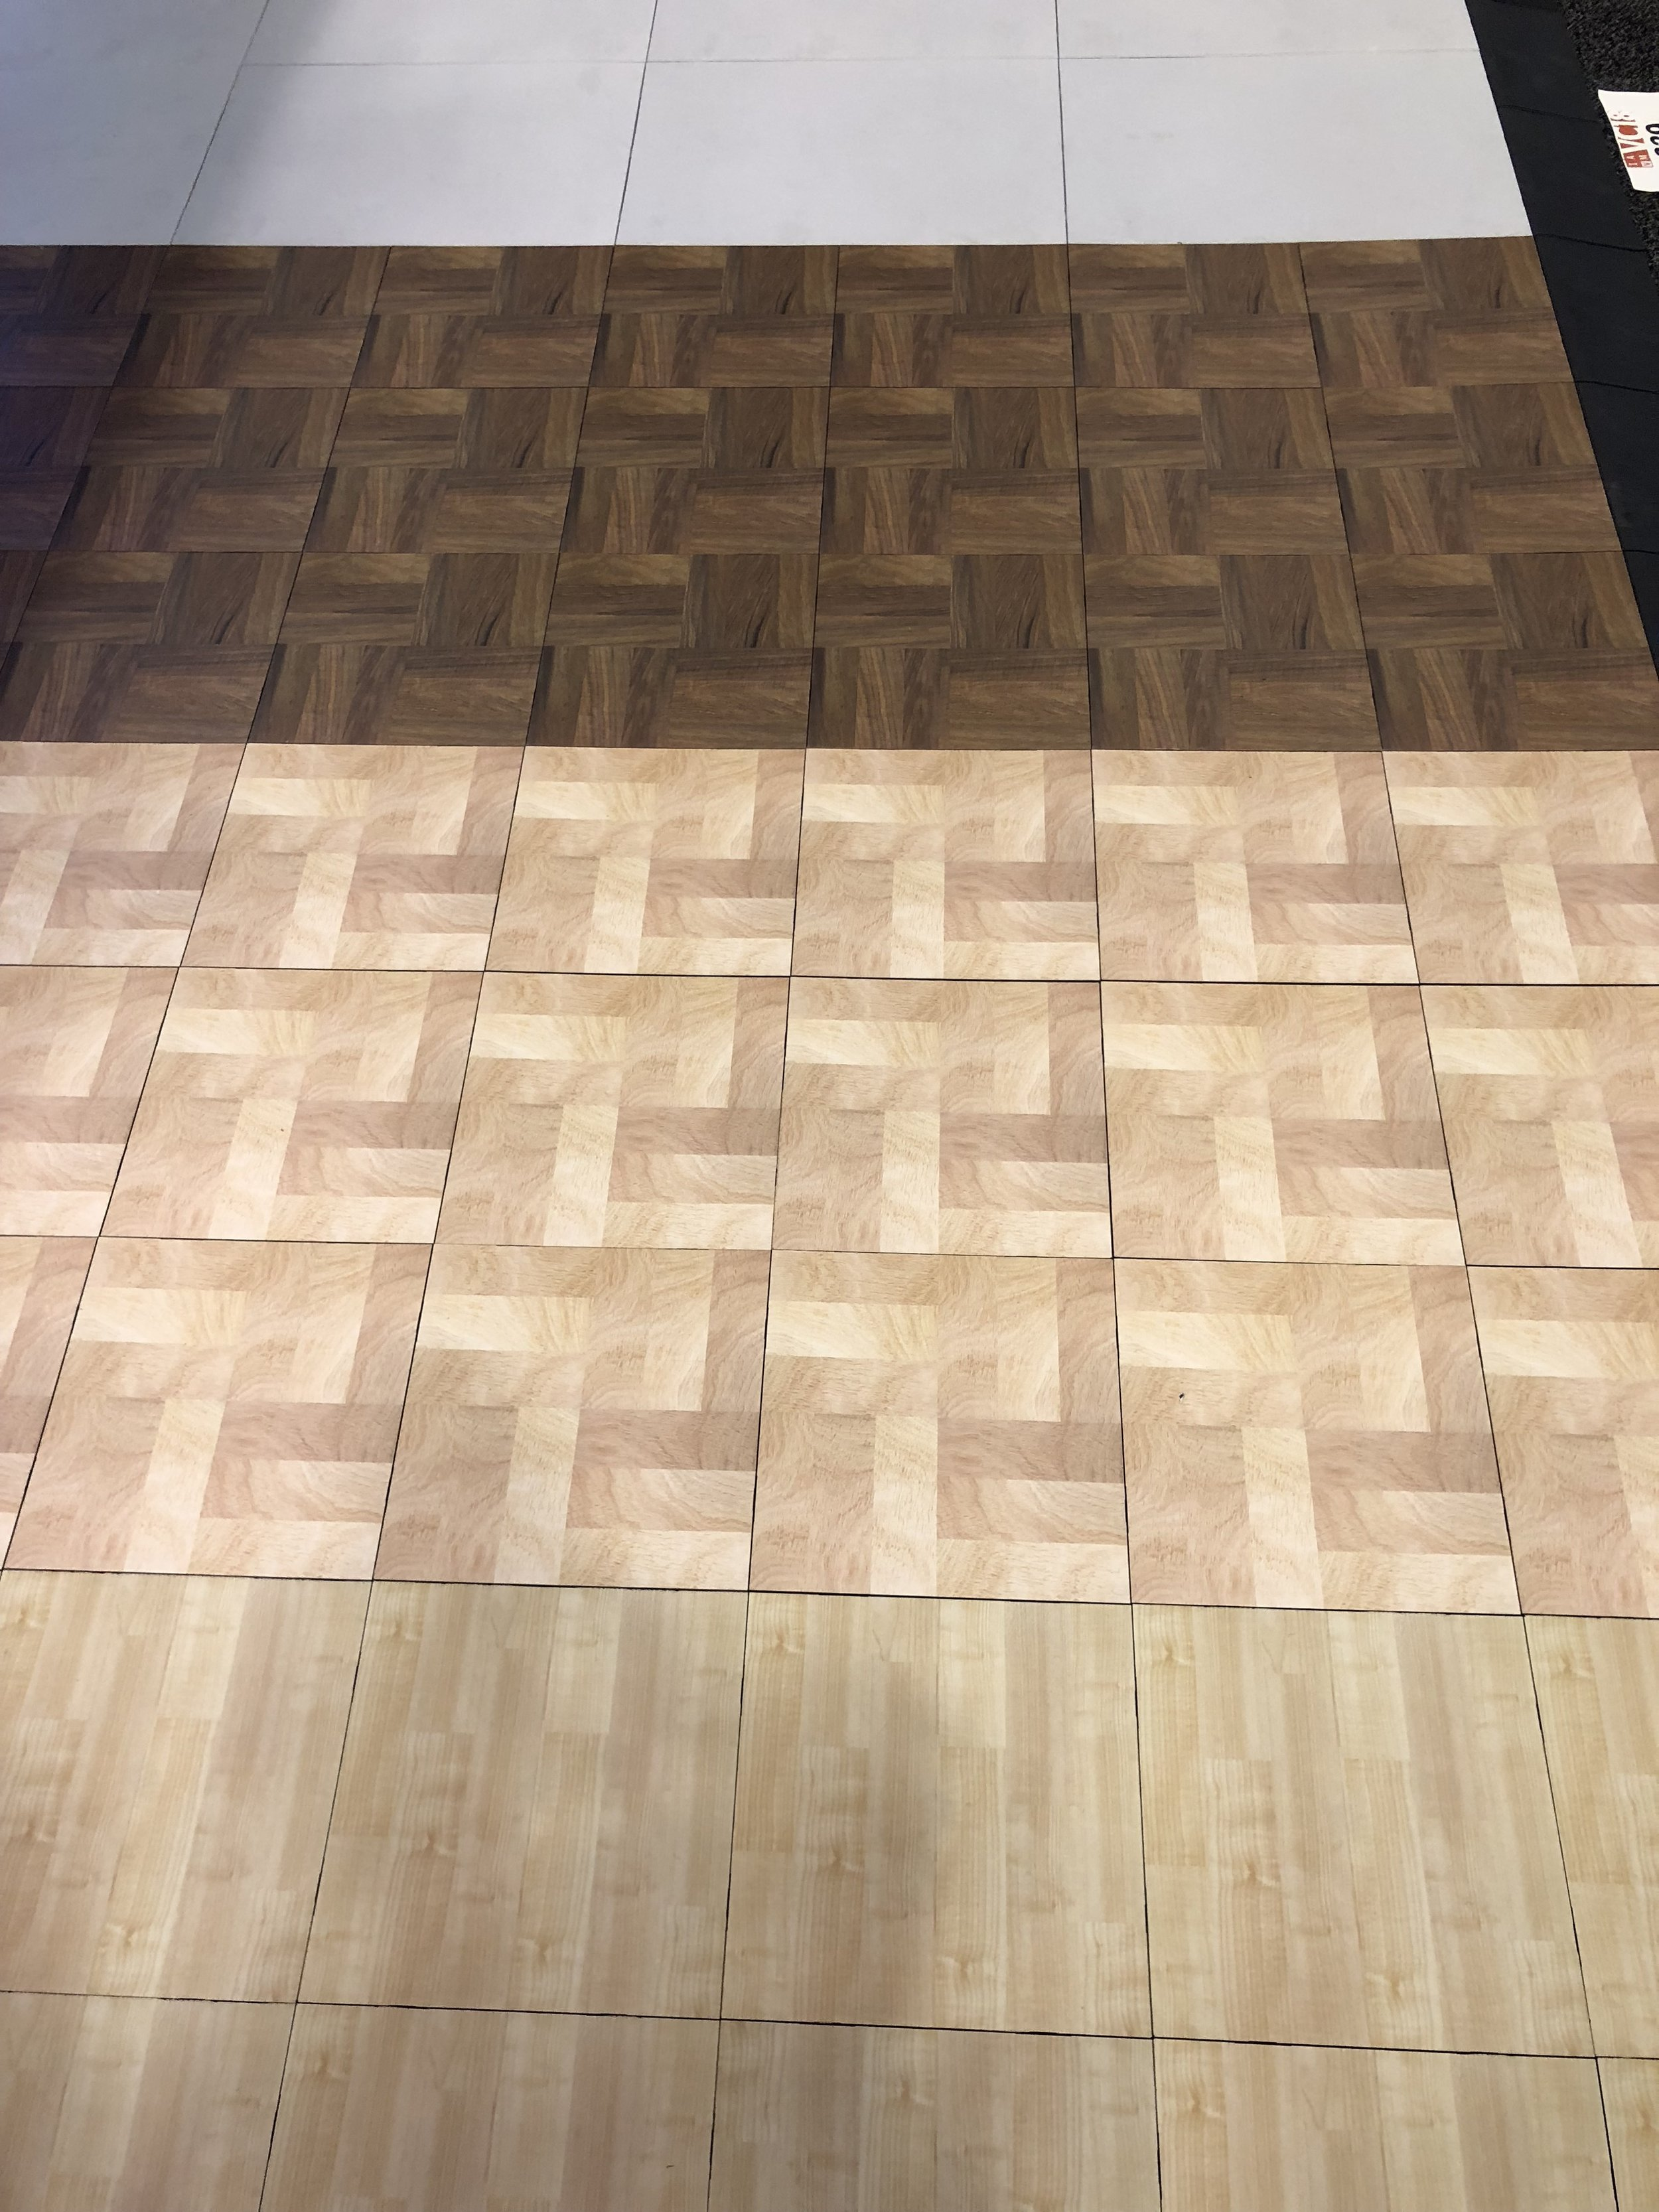 4 realistic wood patterns available.